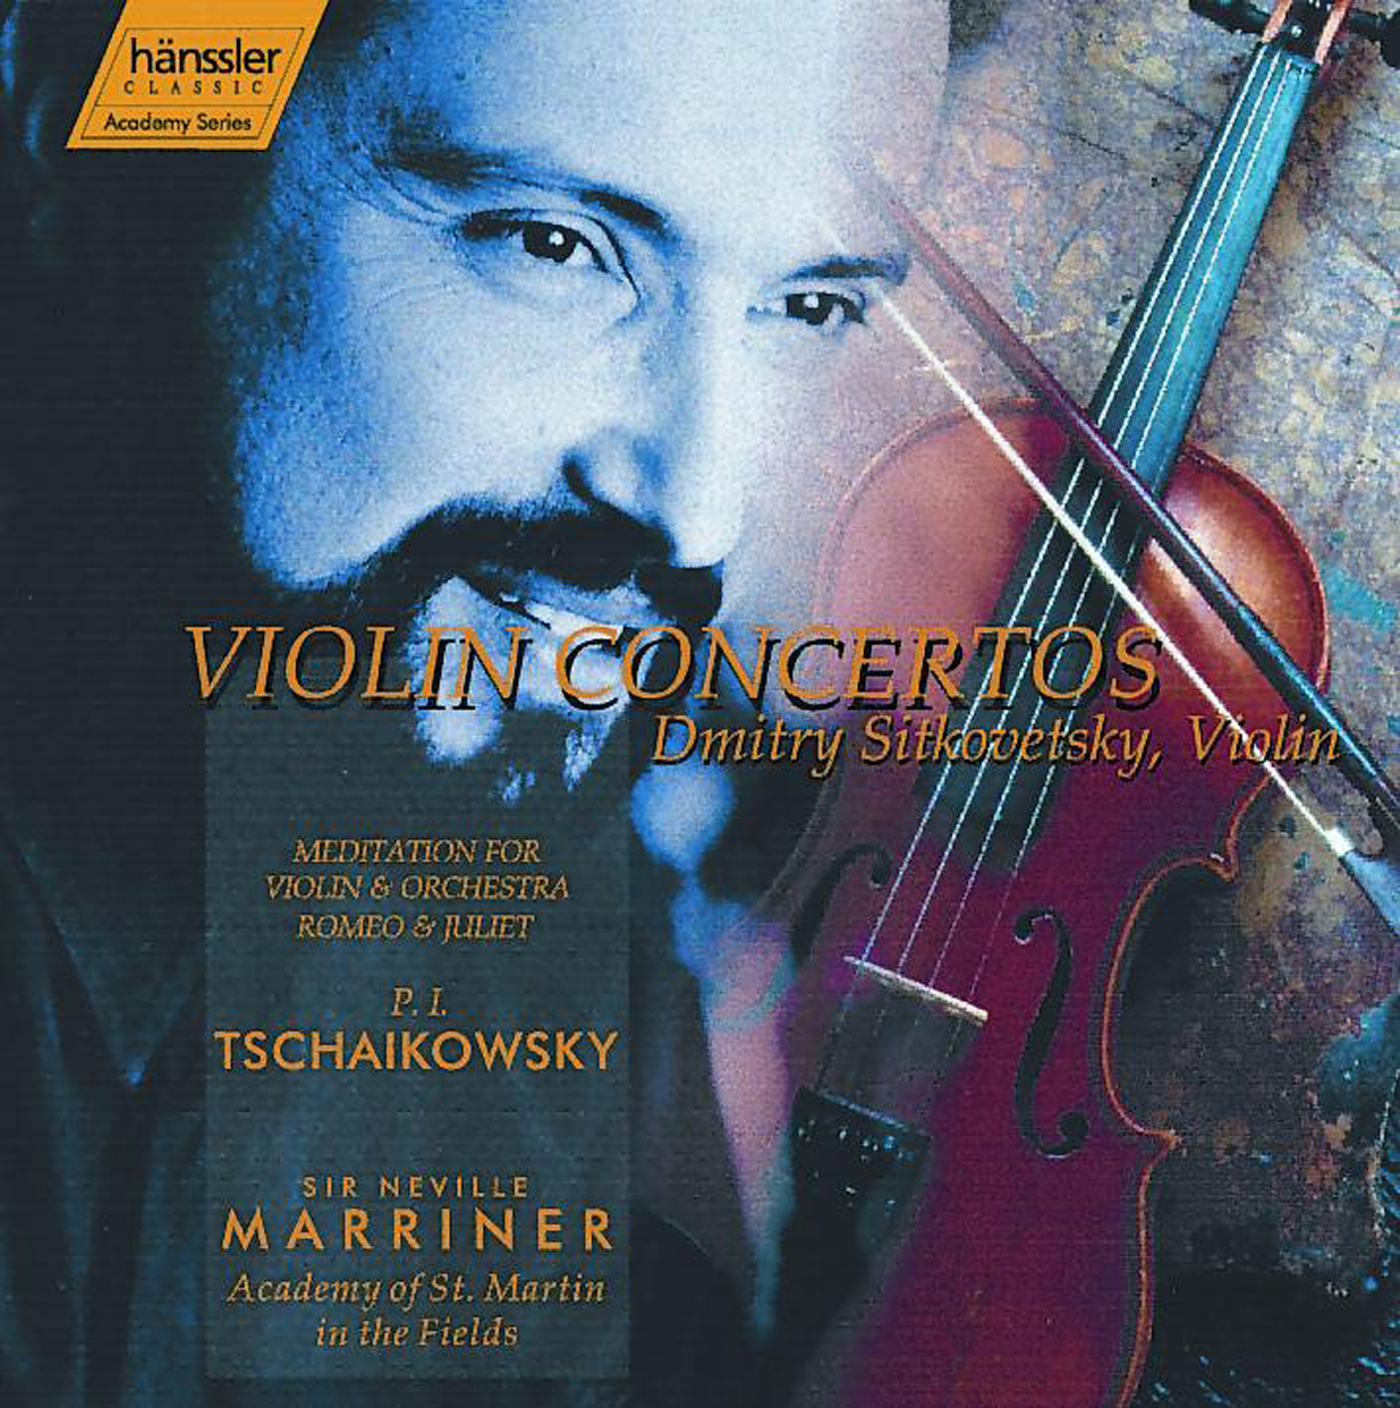 Naxos - Tchaikovsky: Violin Concerto in D Major, Op  35 - Meditation